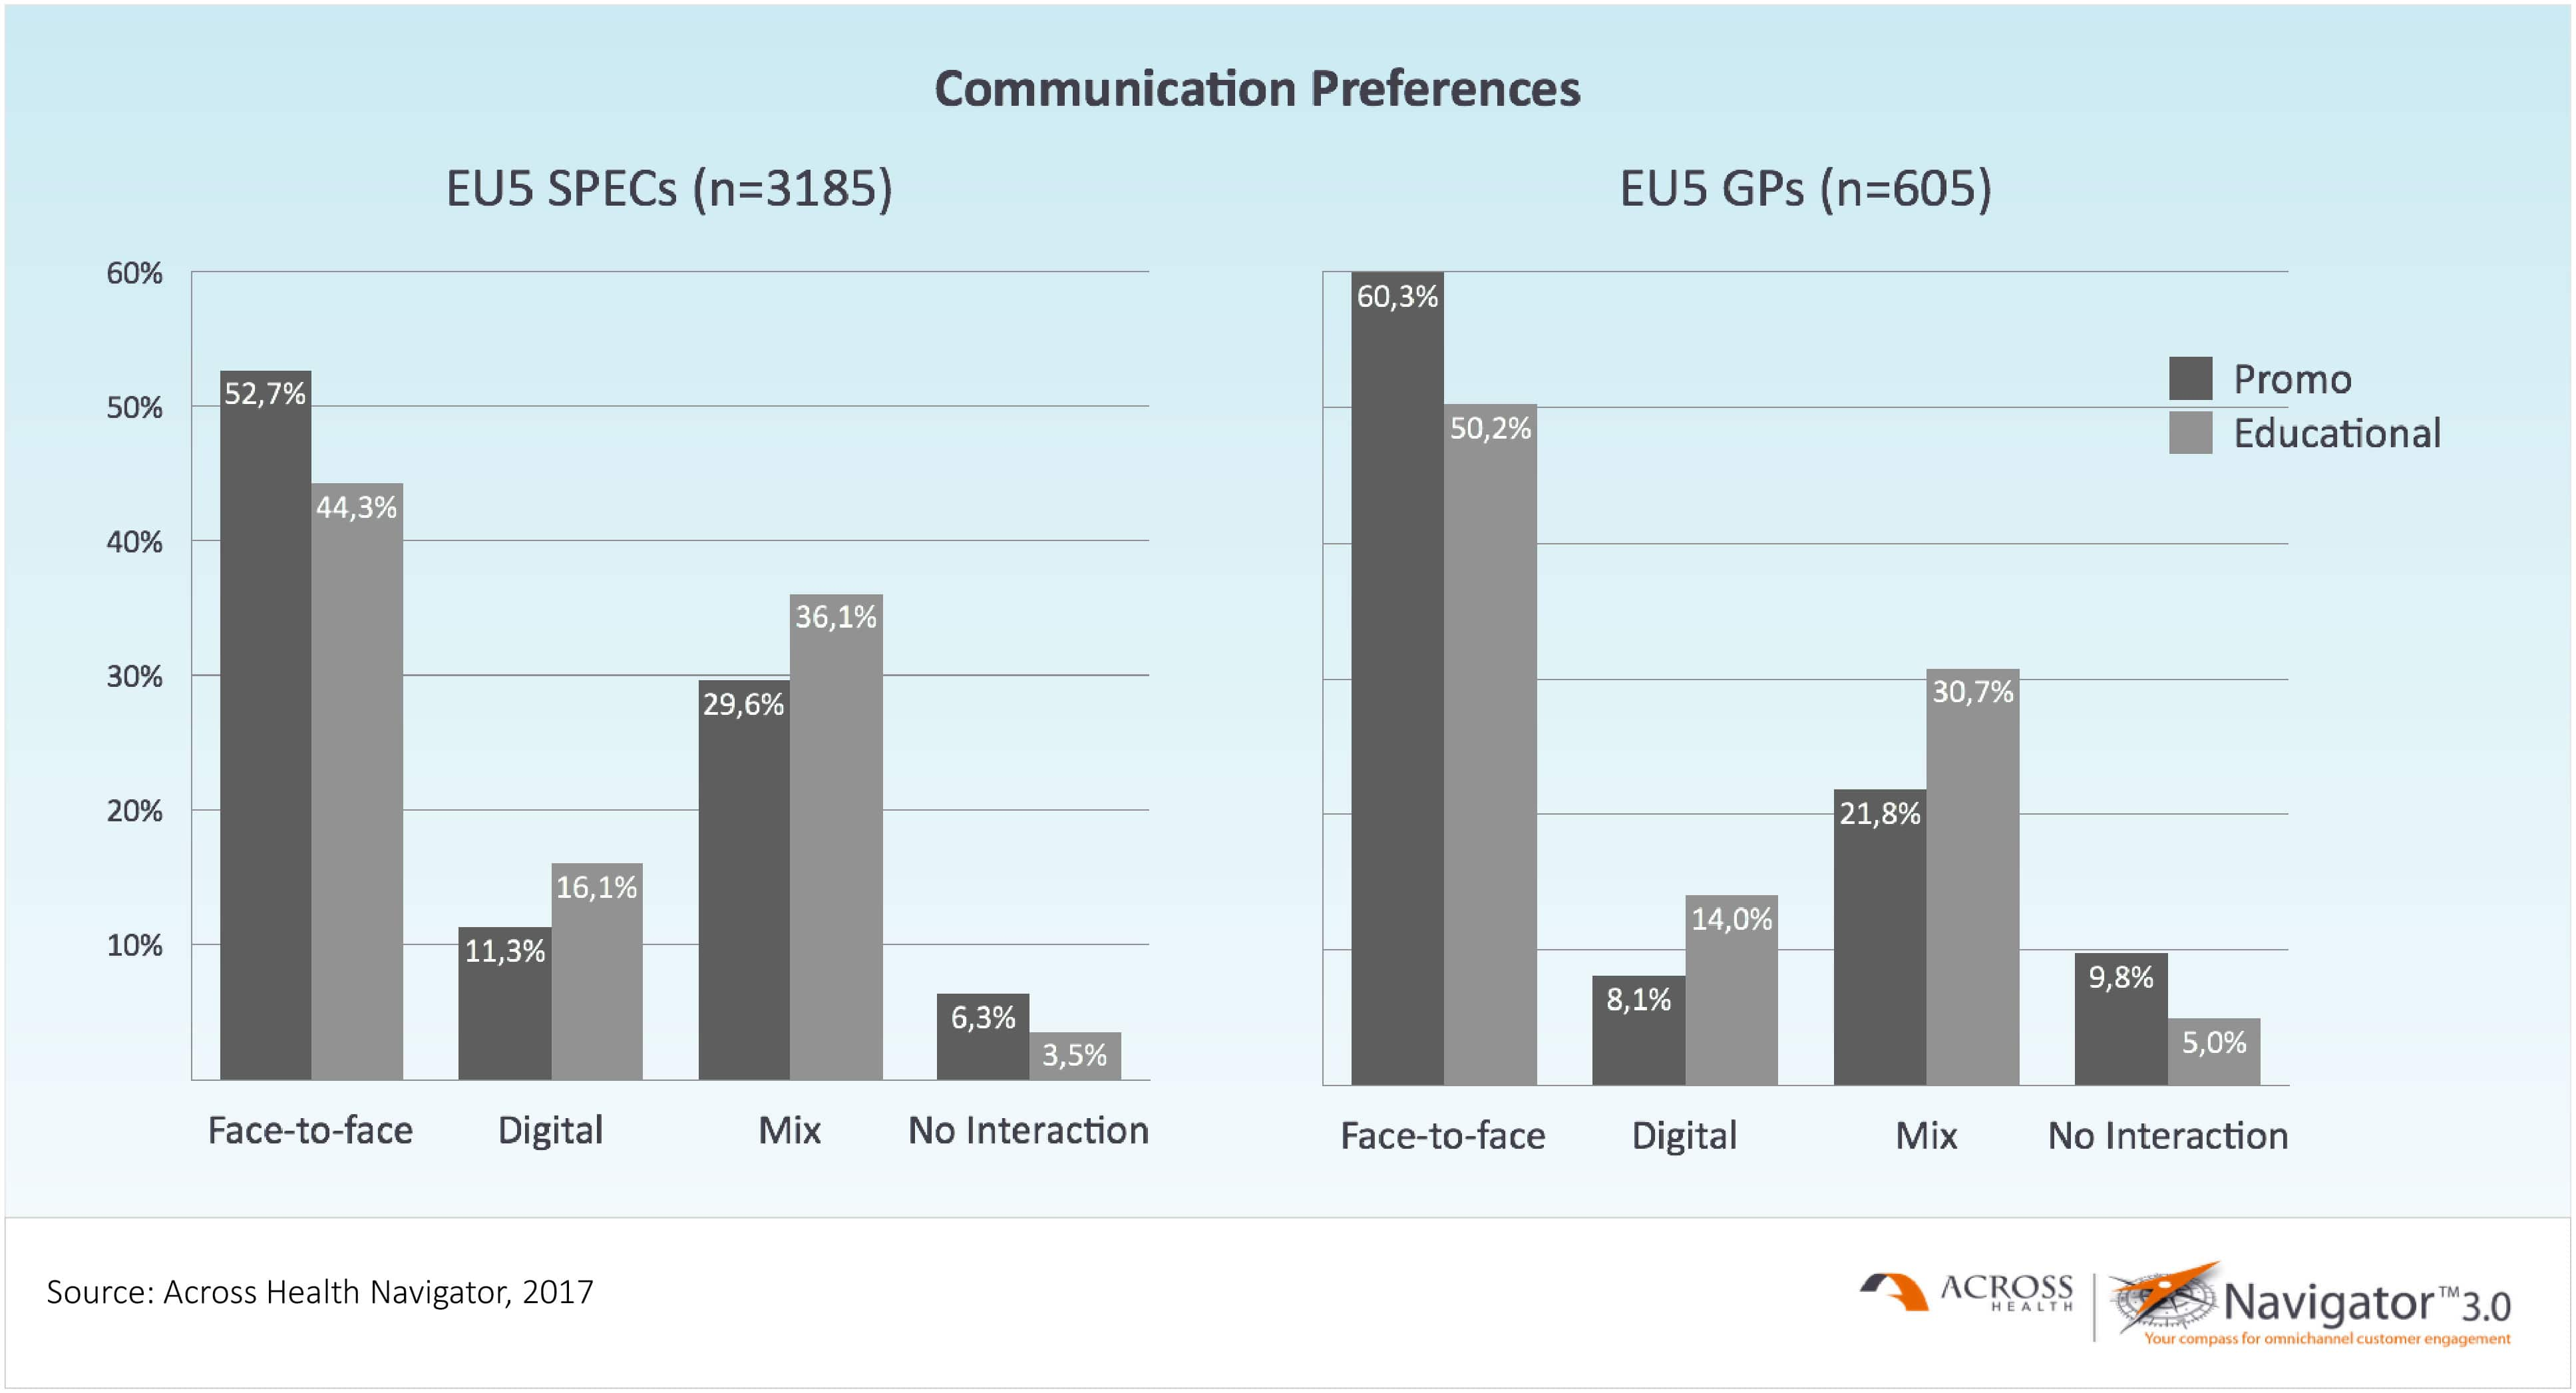 Communication Preferences Specialists and GPs (EU5)